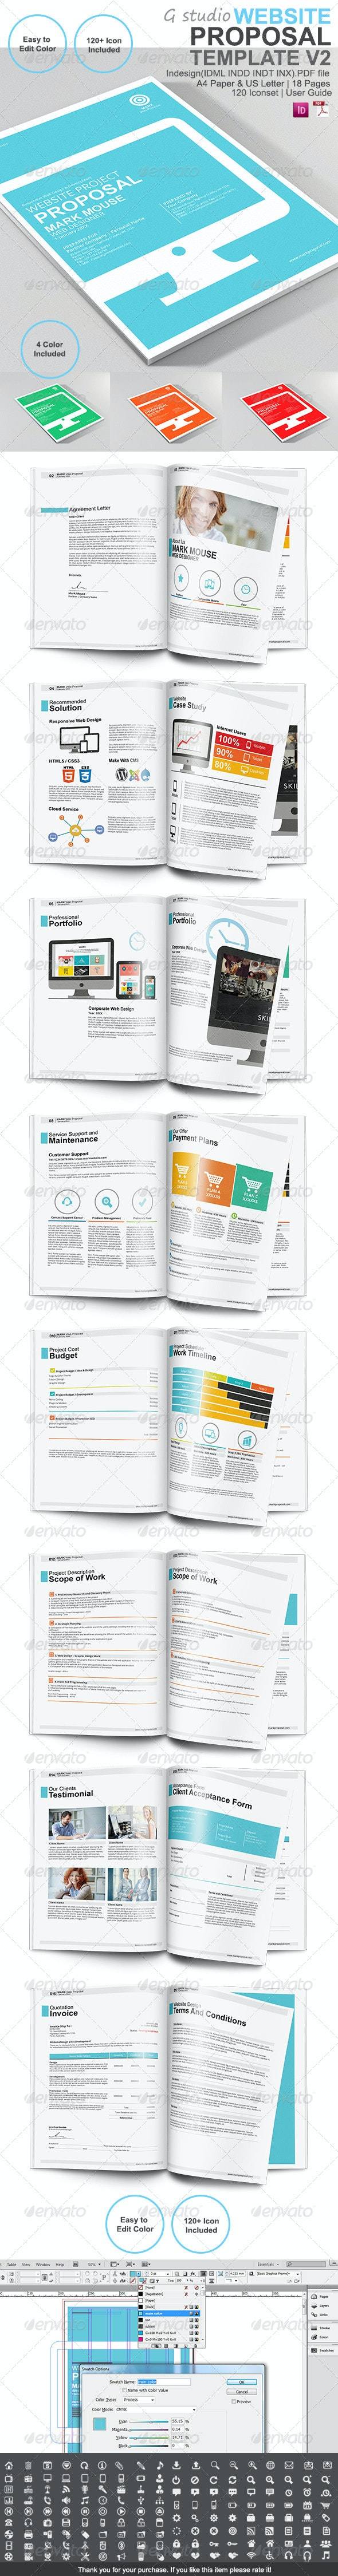 Gstudio Website Proposal Template V2 - Proposals & Invoices Stationery